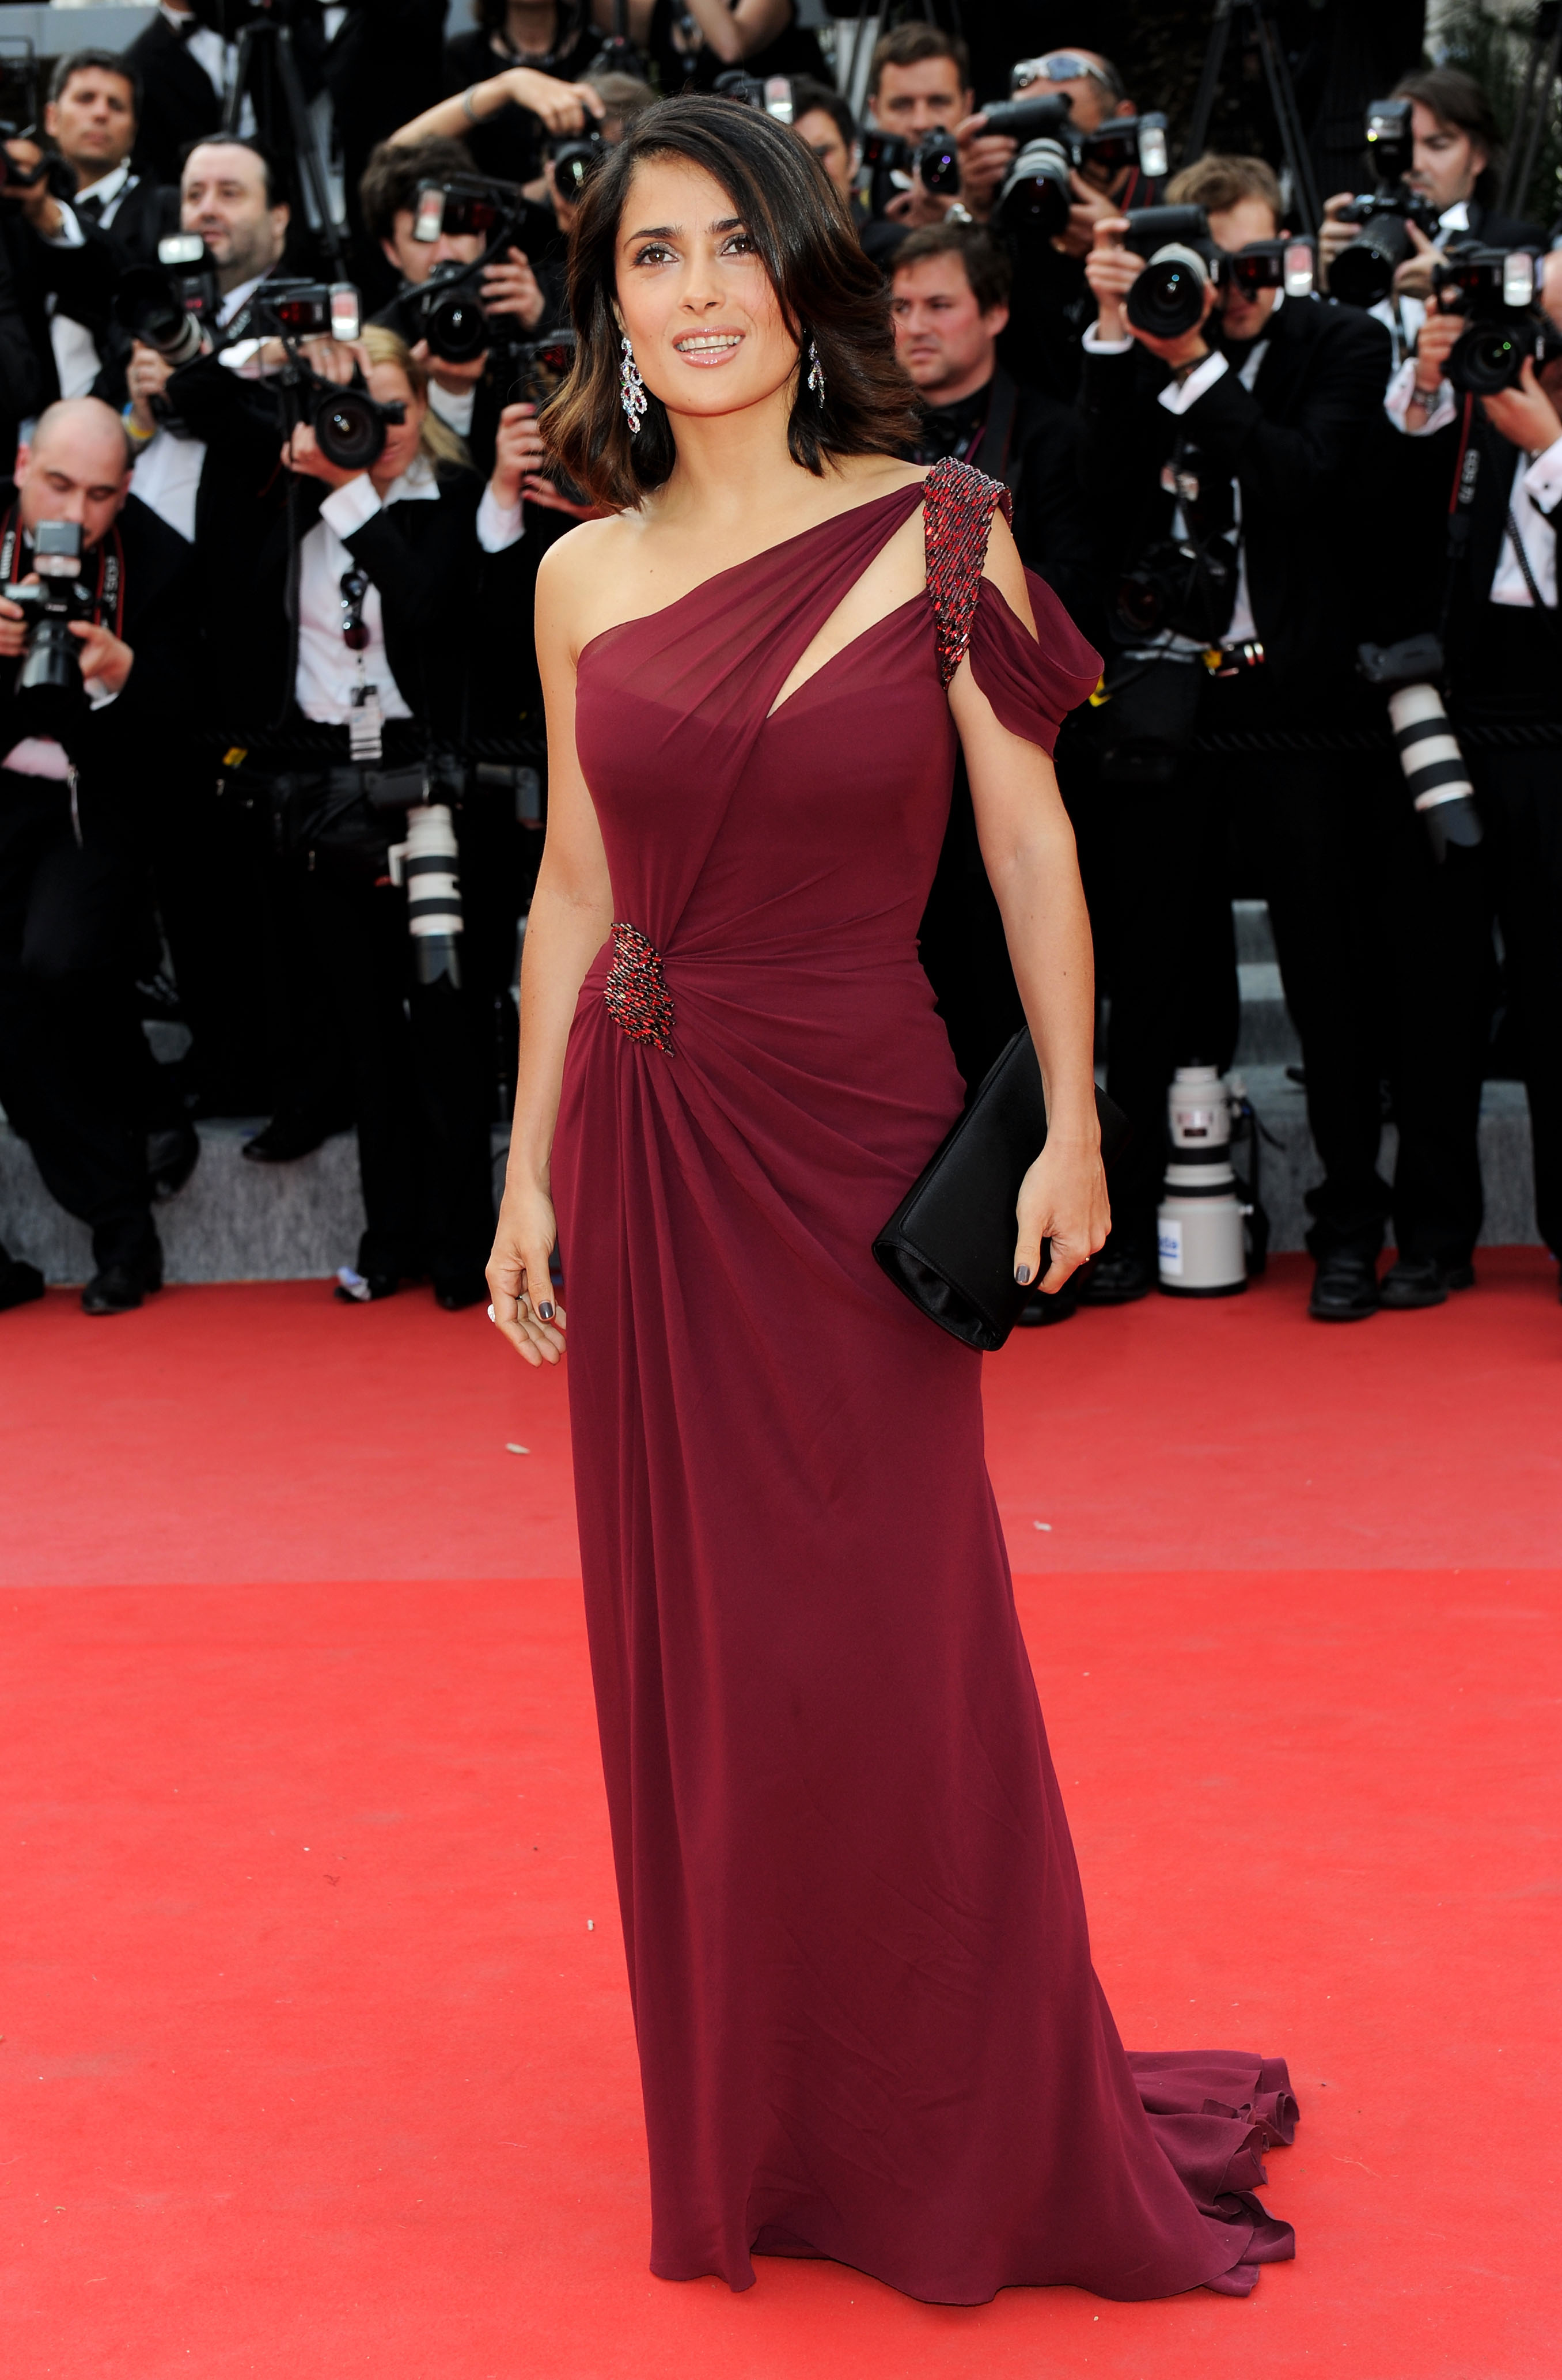 """63rd Annual Cannes Film Festival - Opening Night Premiere of """"Robin Hood"""""""